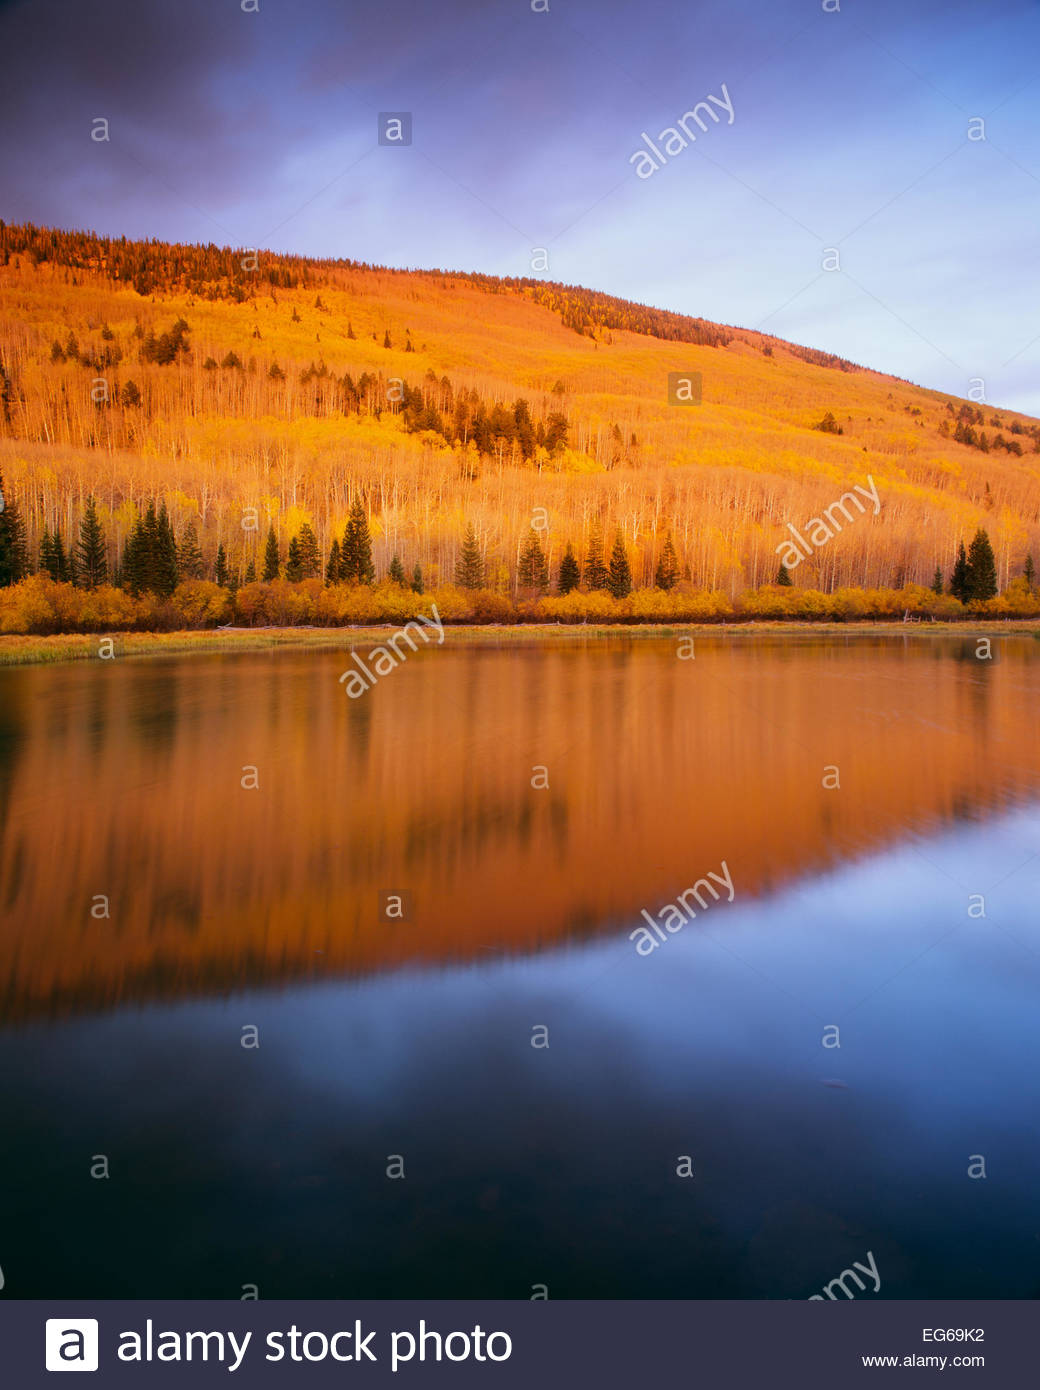 Warner Lake,  La Sal Mountains.  Manti La Sal National Forest, Utah. - Stock Image